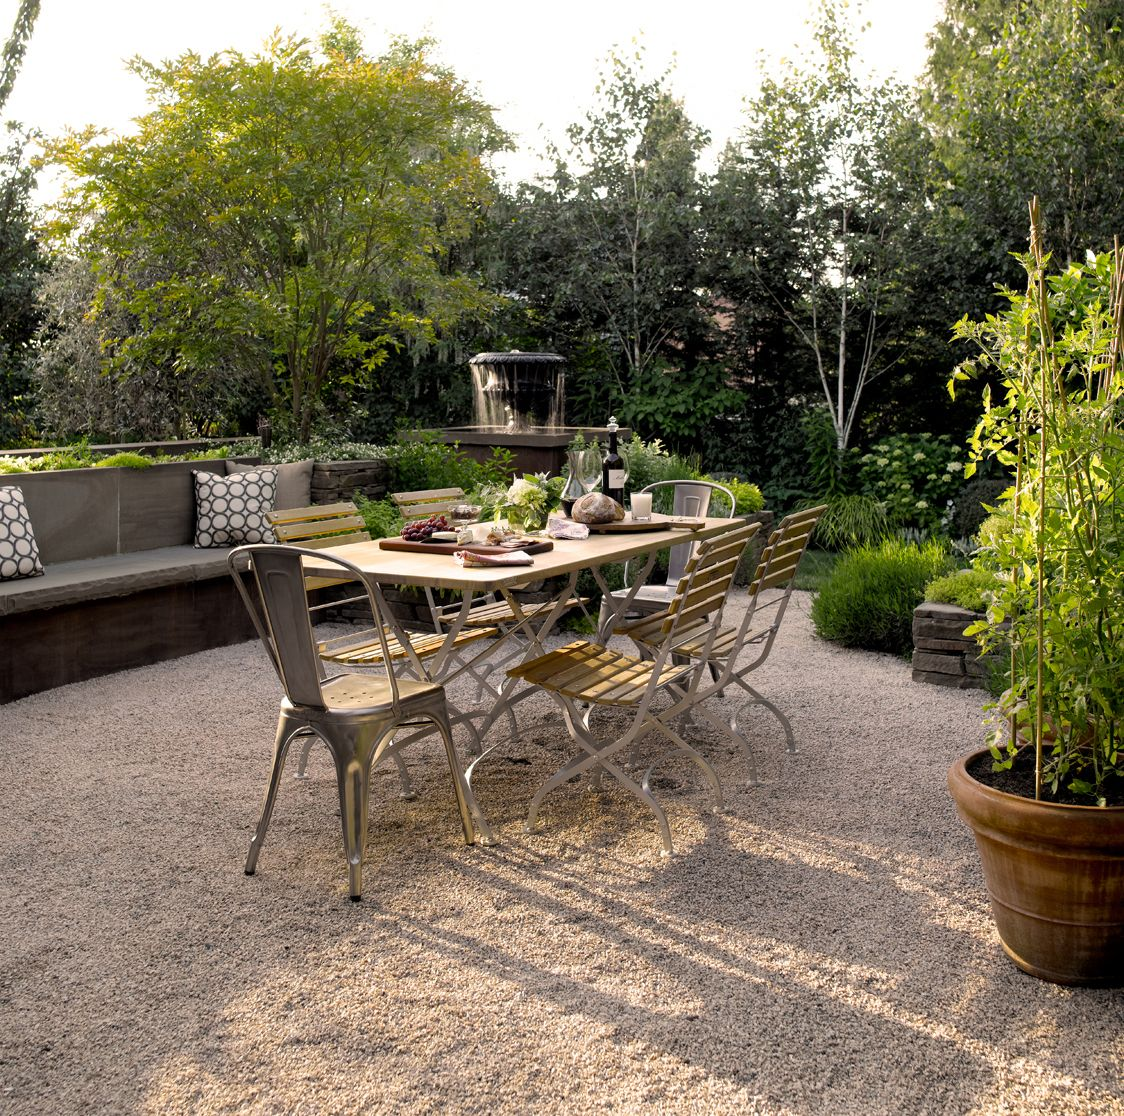 French backyard gardens - French Style Gravel Patio